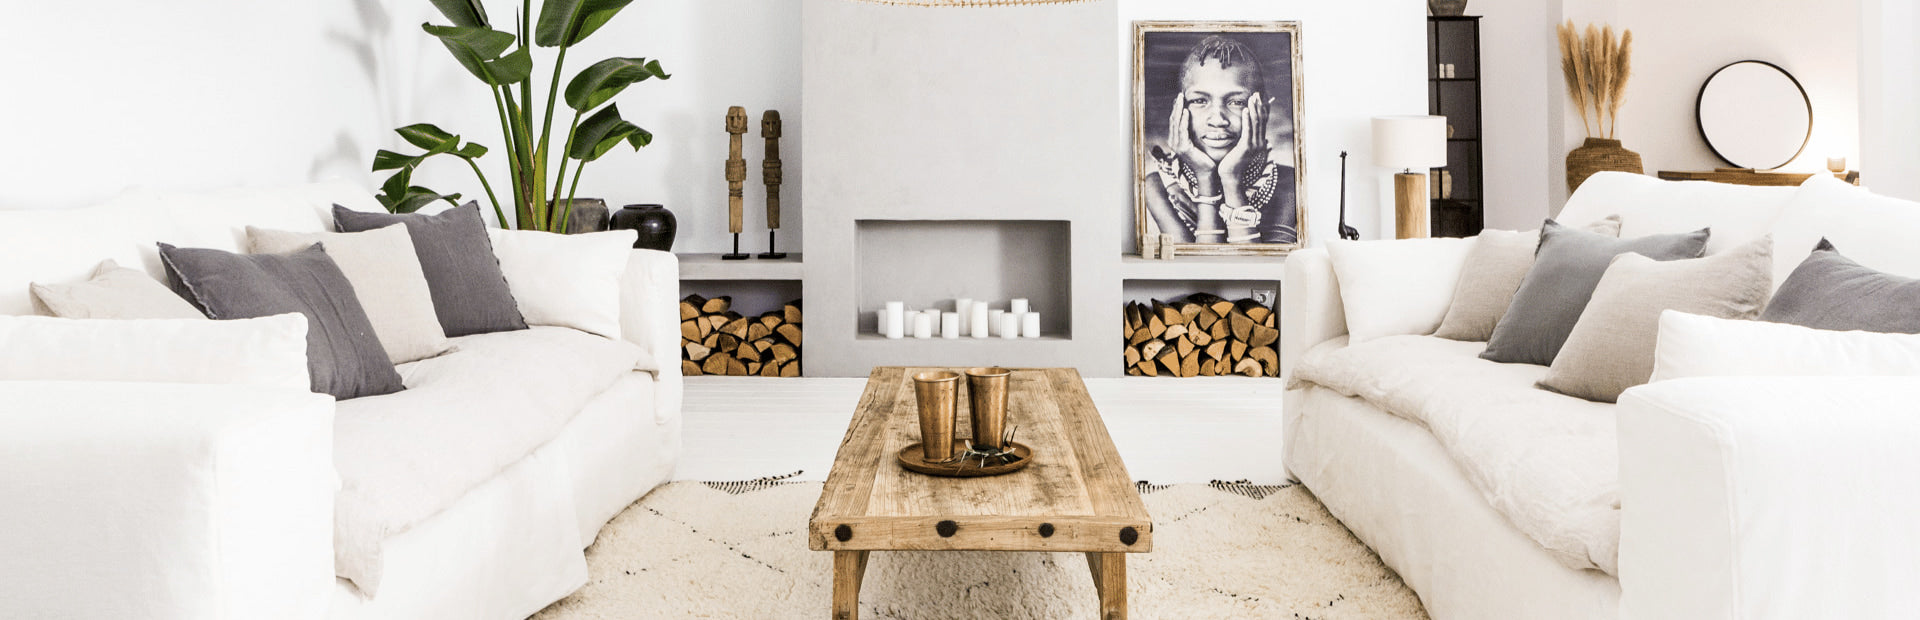 Visit Our Zoco Home Store From Home - Virtual Visit